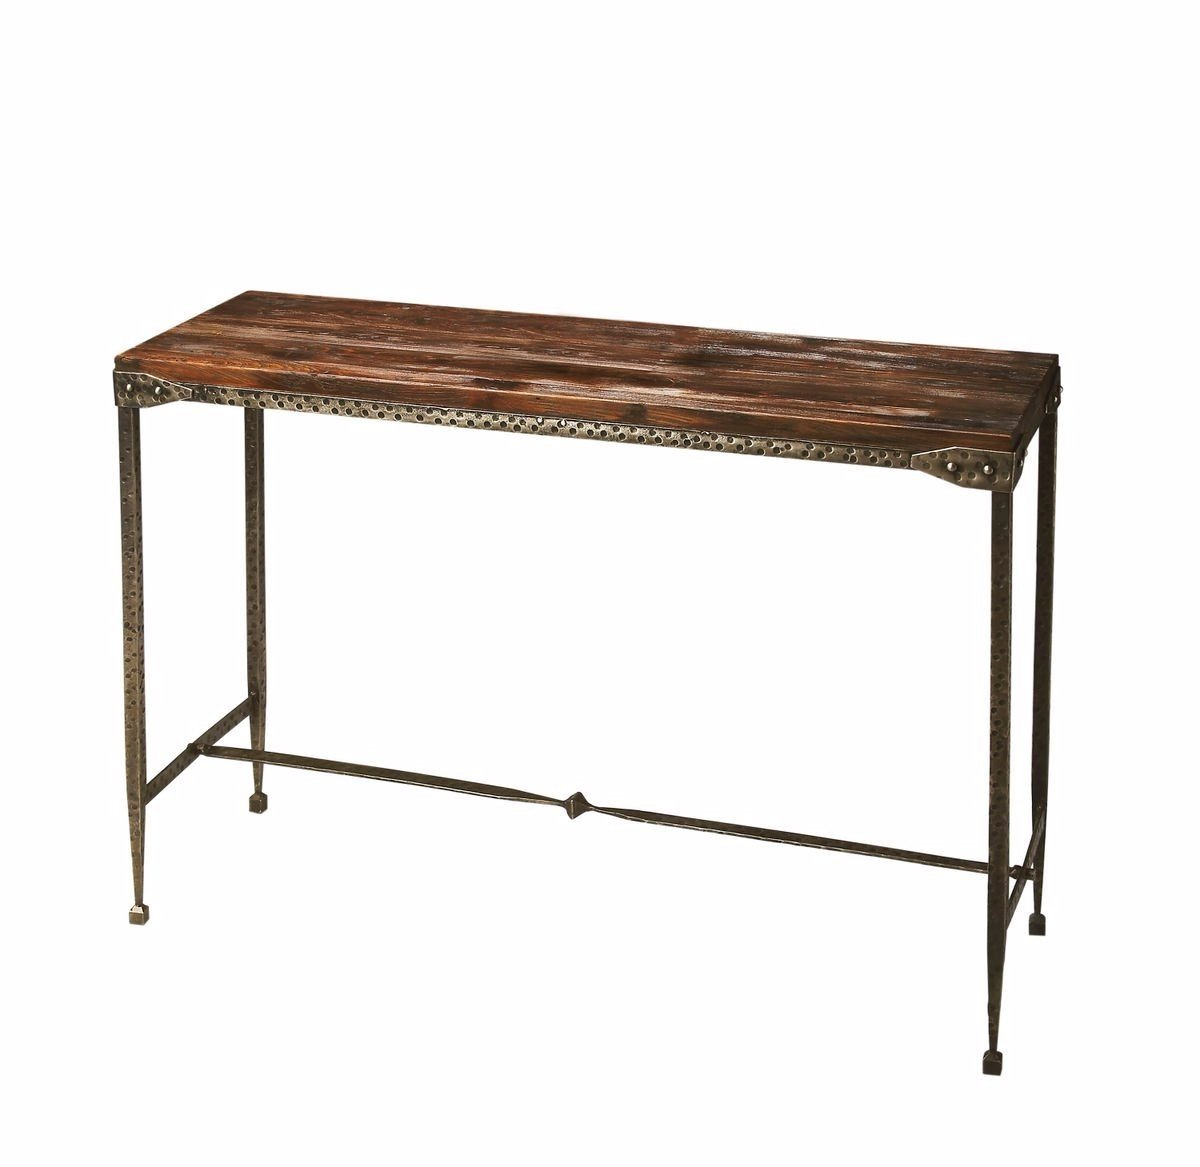 Ambiant CONSOLE TABLE